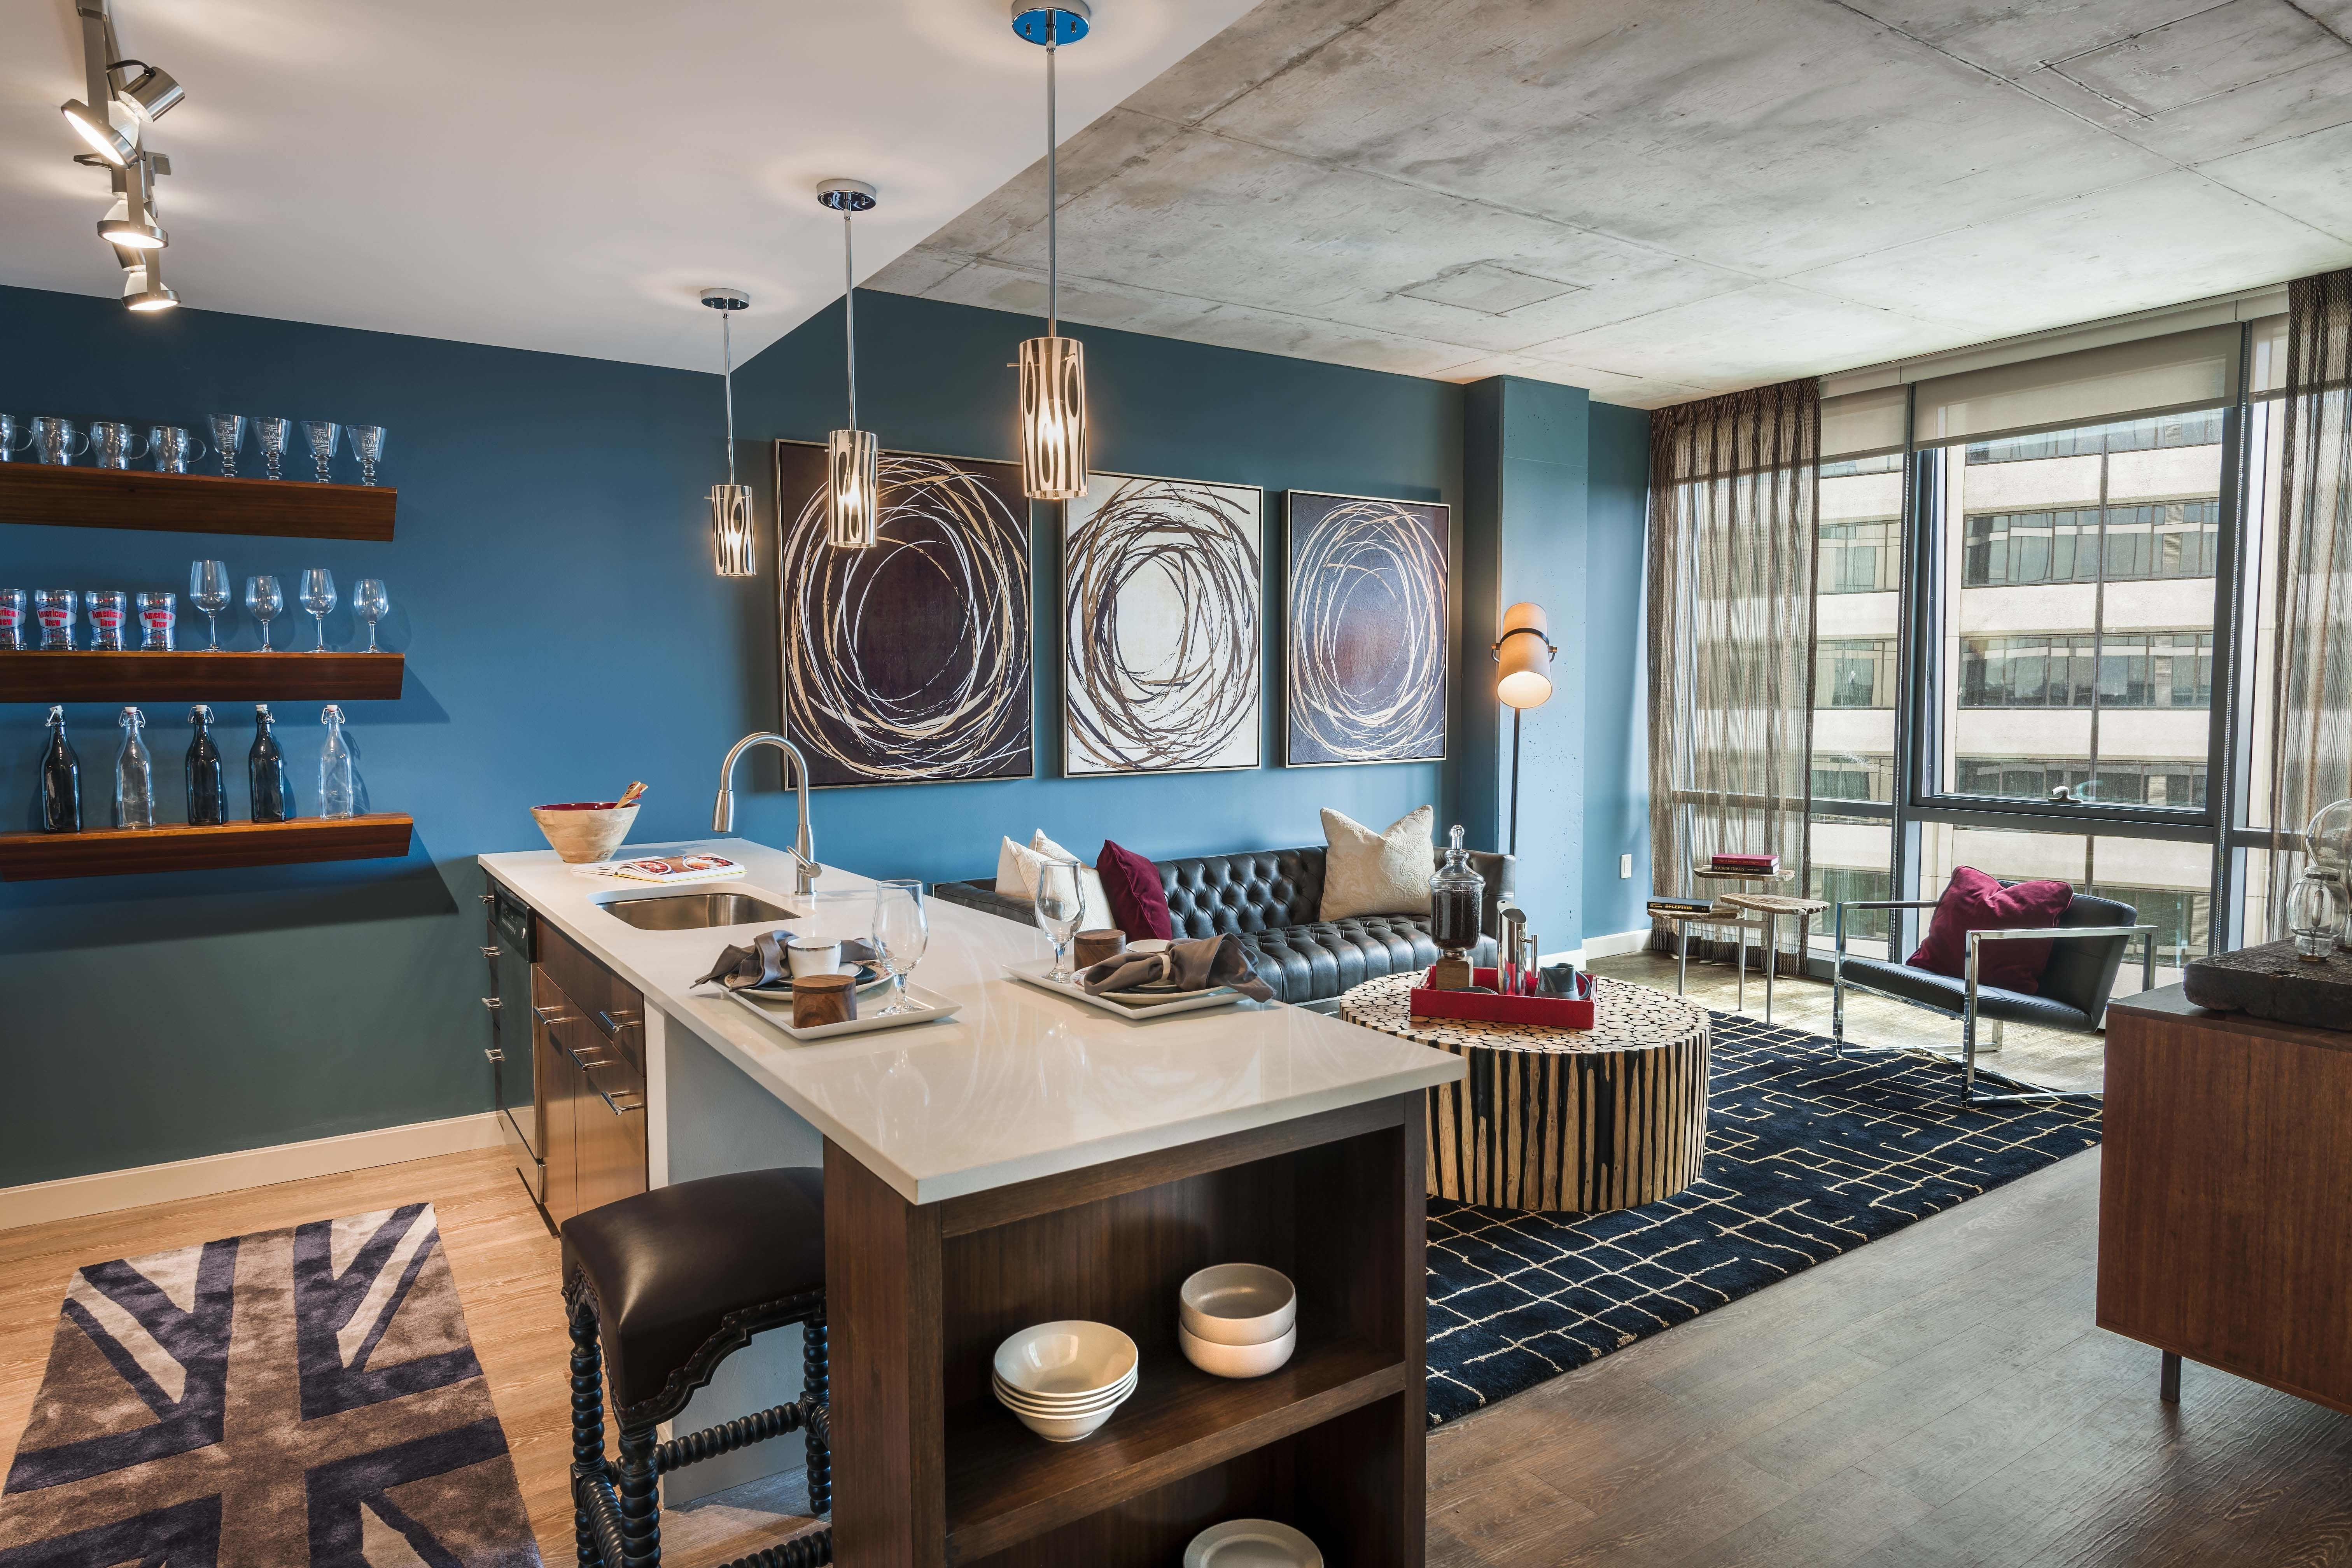 100 Best Apartments in Philadelphia, PA from 450